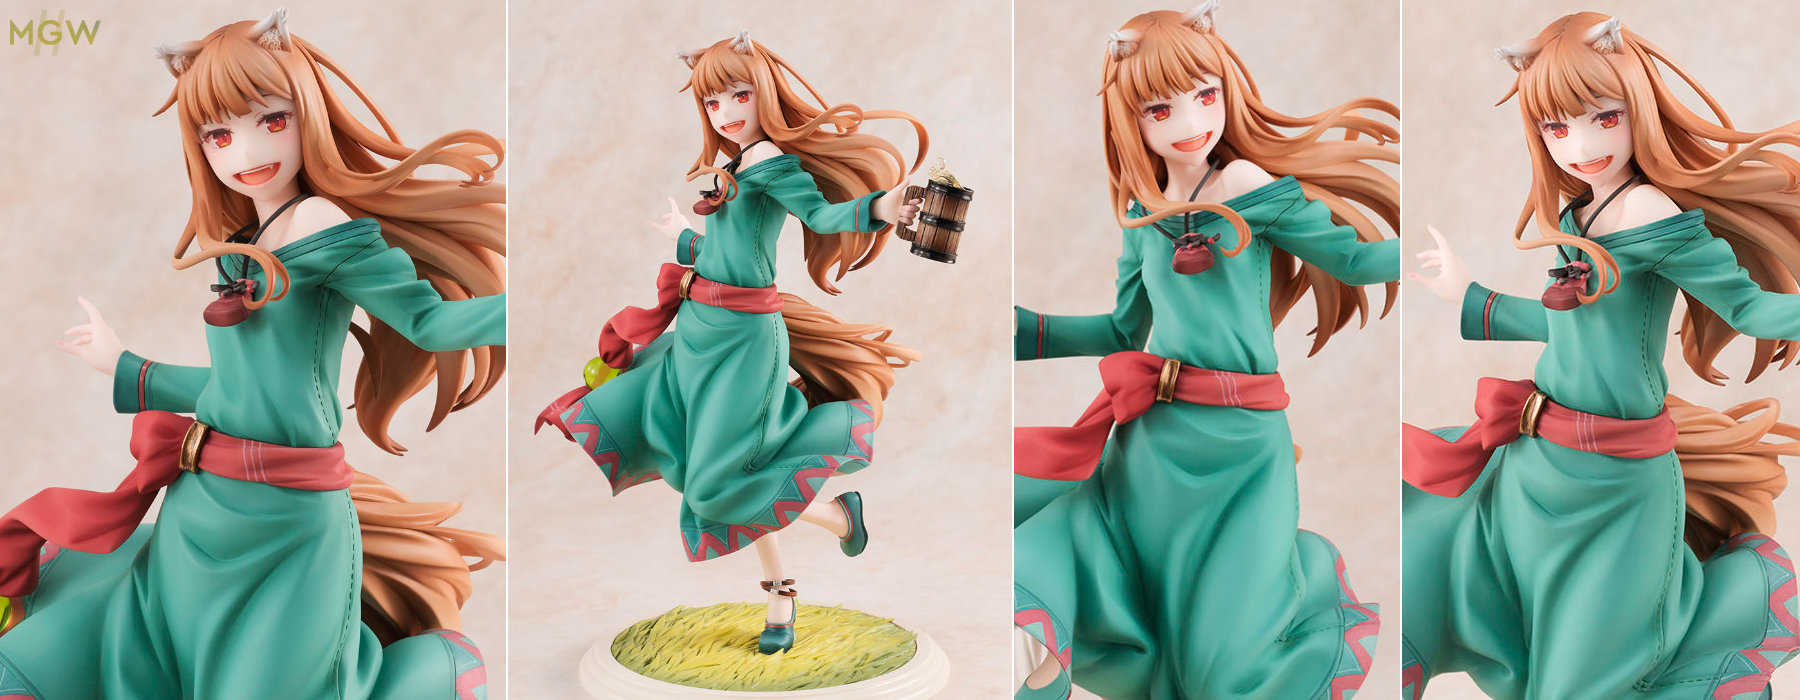 Holo Spice and Wolf 10th Anniversary Ver. by REVOLVE from Spice and Wolf MyGrailWatch Anime Figure Guide